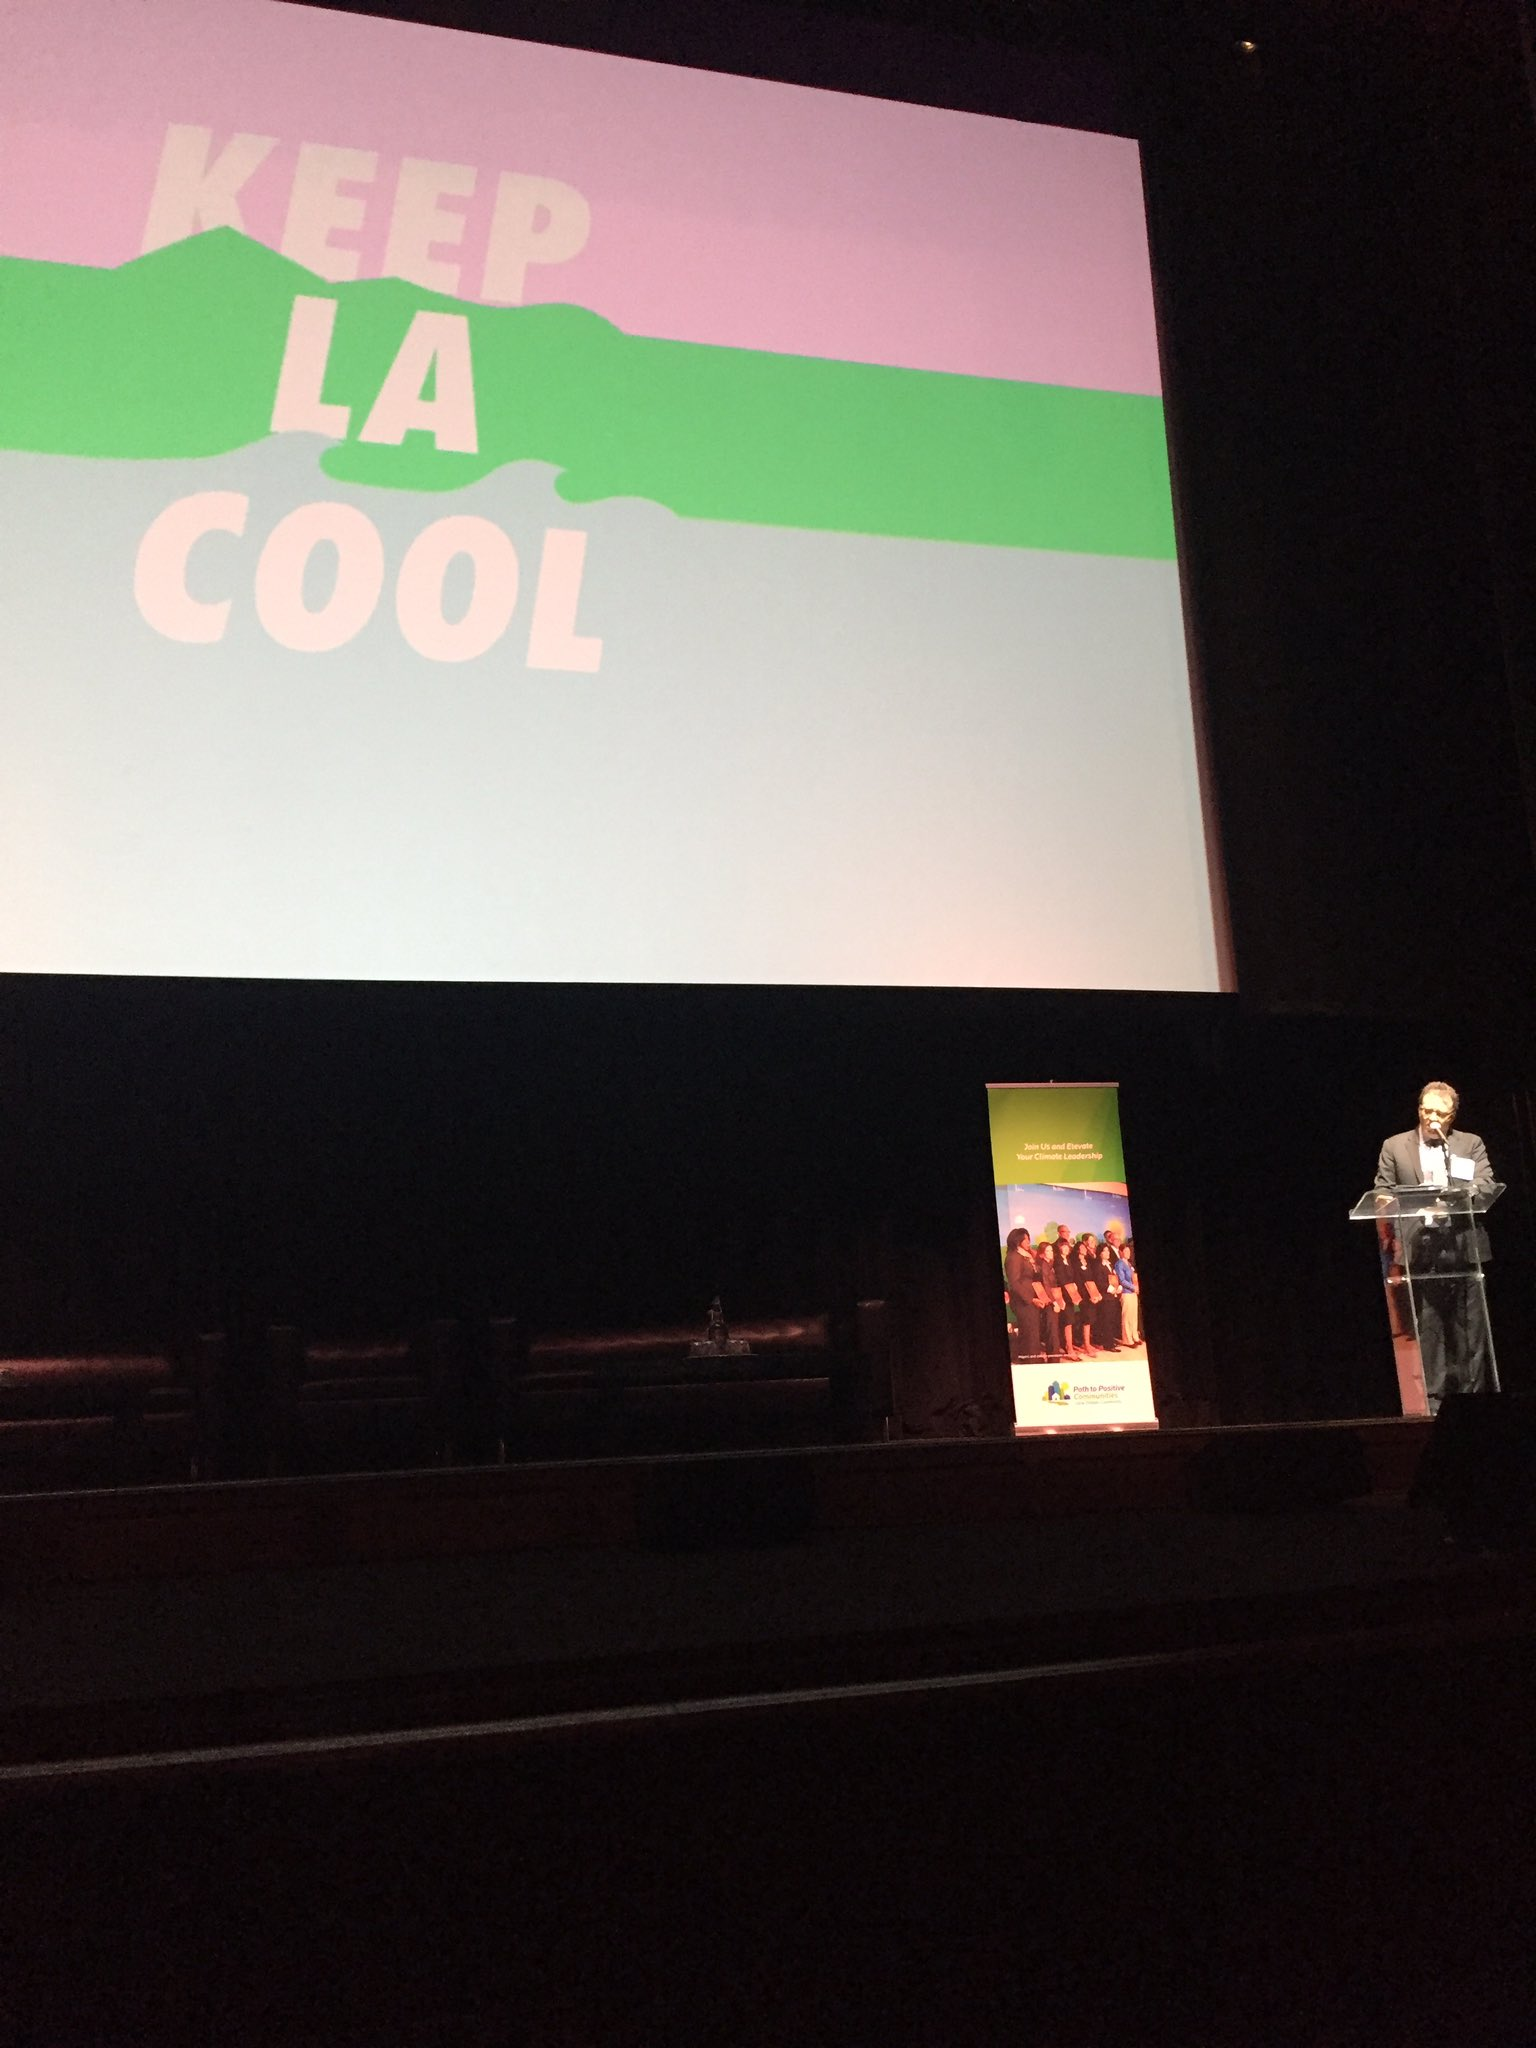 """When the feds go low, we go local"" - @jparfrey at #climatedayla Let's #keepLAcool with local #climate solutions! https://t.co/vC4UXh0UyK"